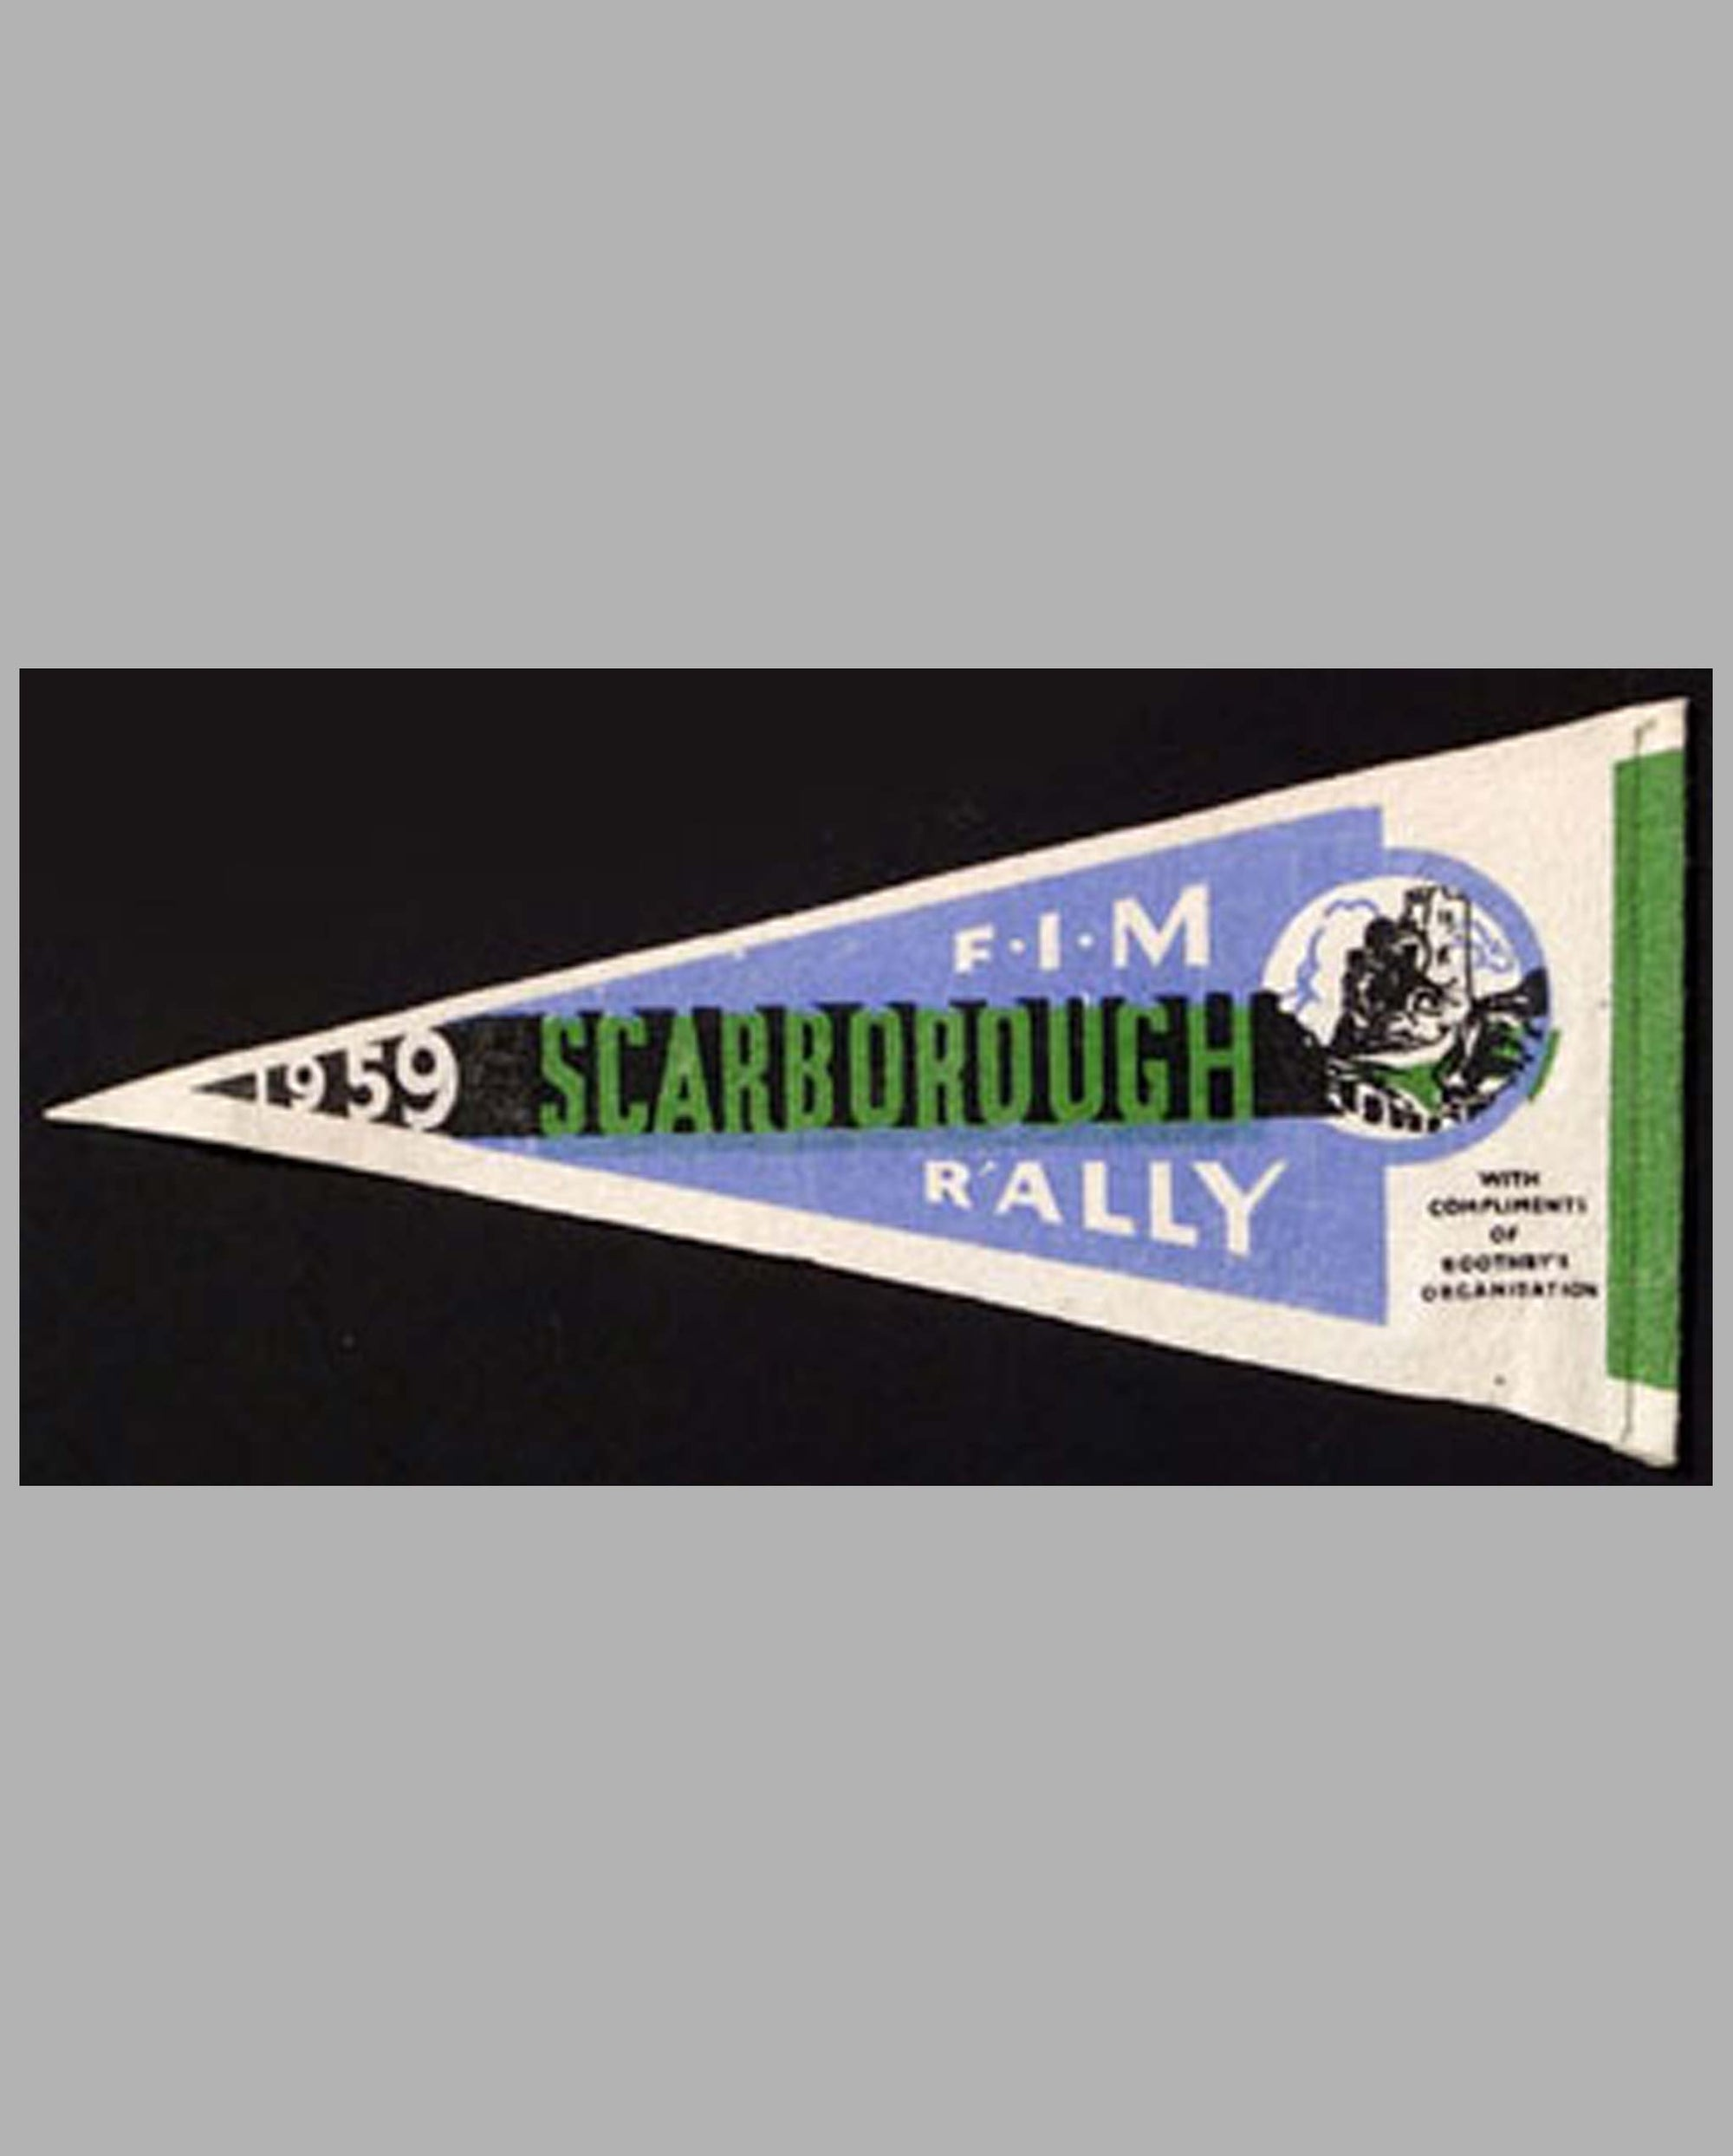 FIM Scarborough Rally 1959 pennant